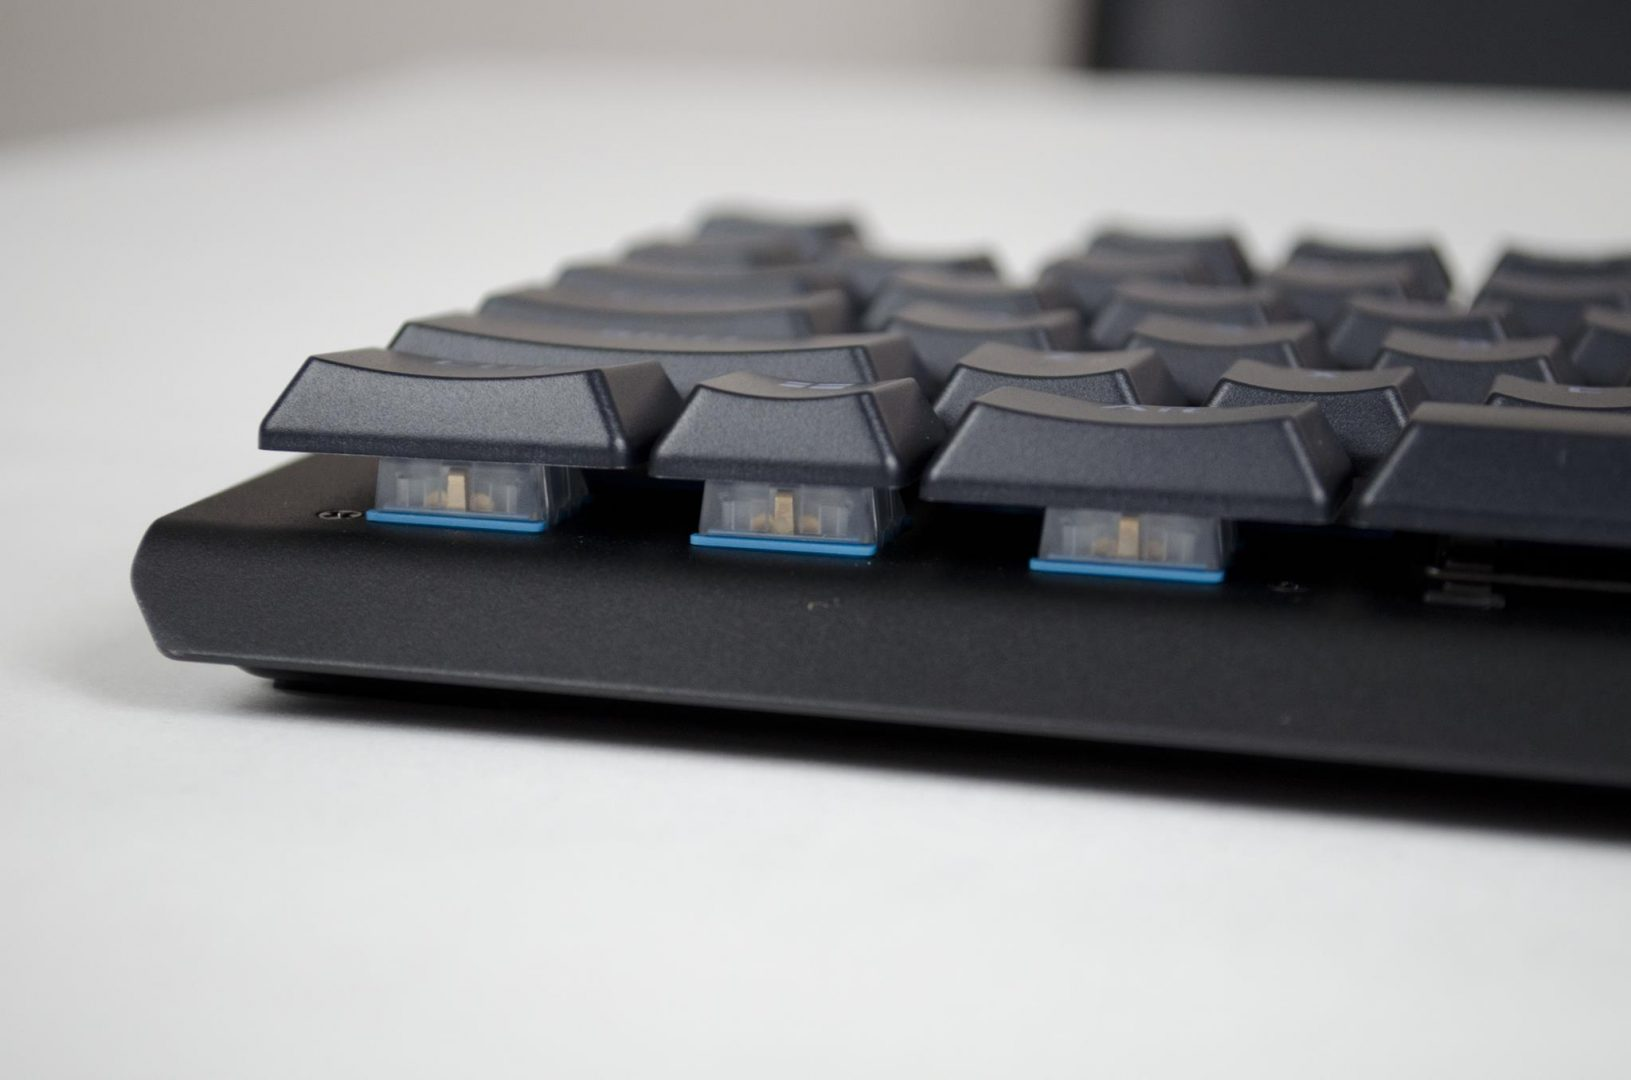 tesoro-gram-spectrum-rgm-gaming-mechanical-keyboard-review_9